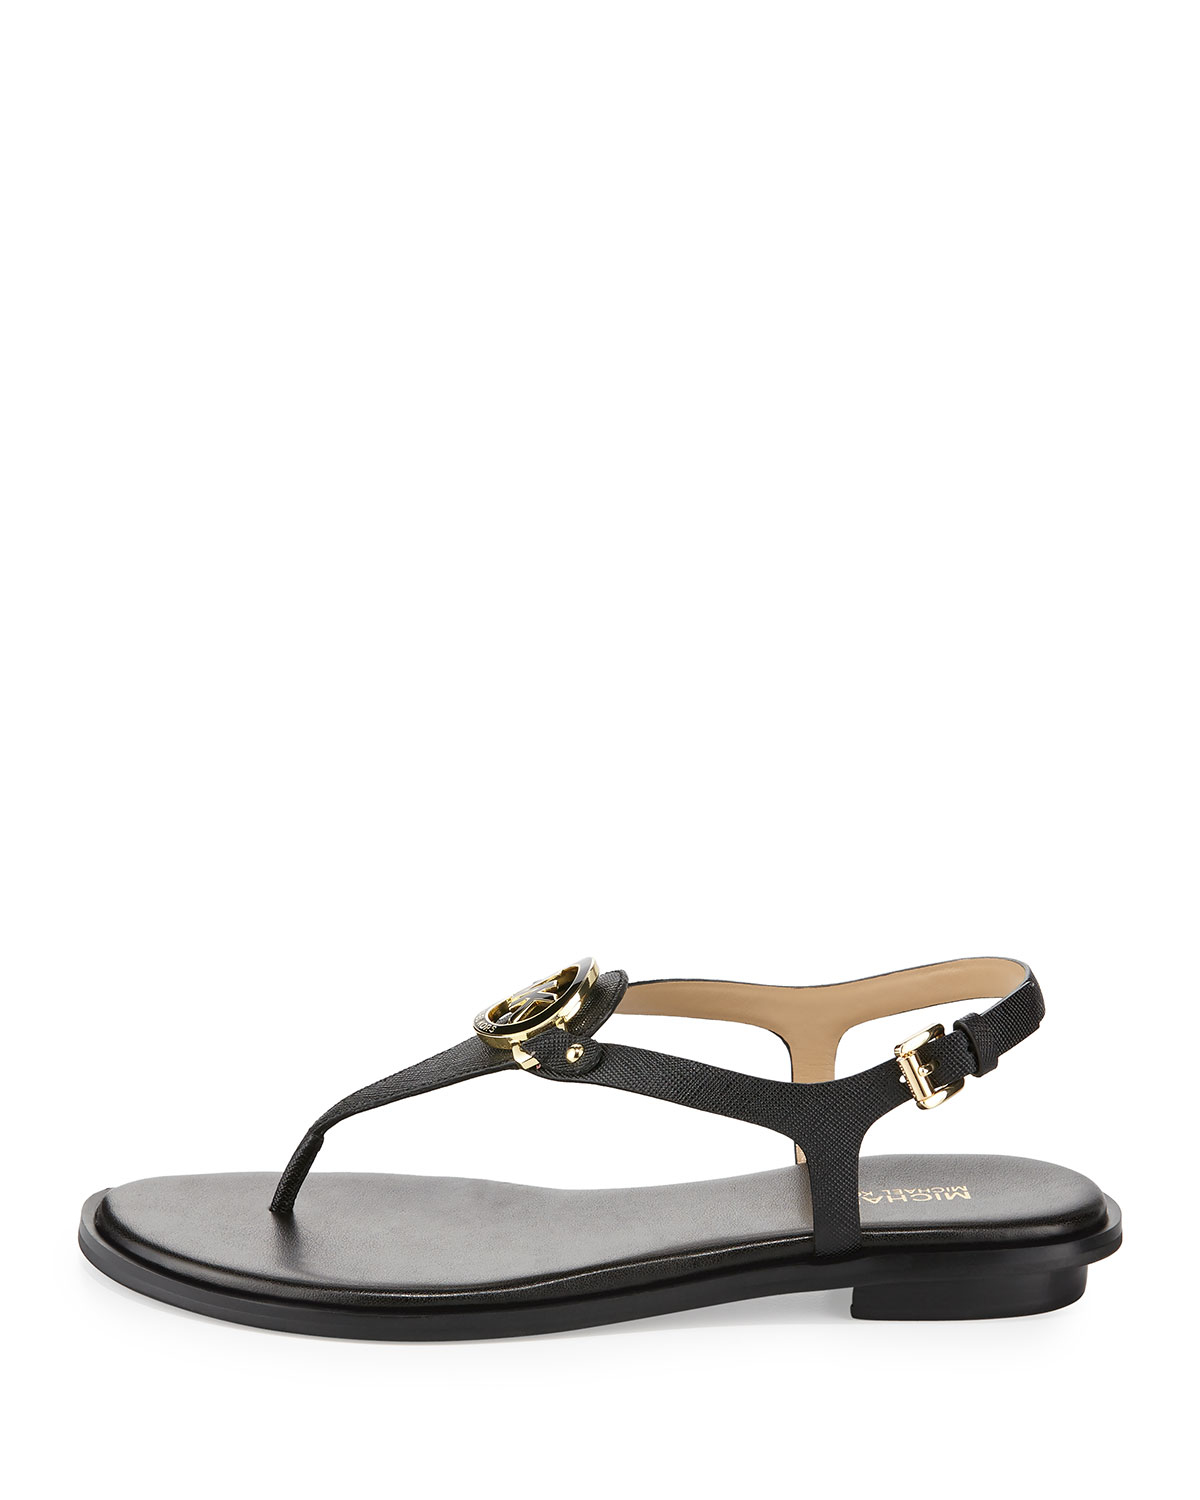 3e1a3401478 Lyst - MICHAEL Michael Kors Lee Leather Flat Thong Sandal in Black